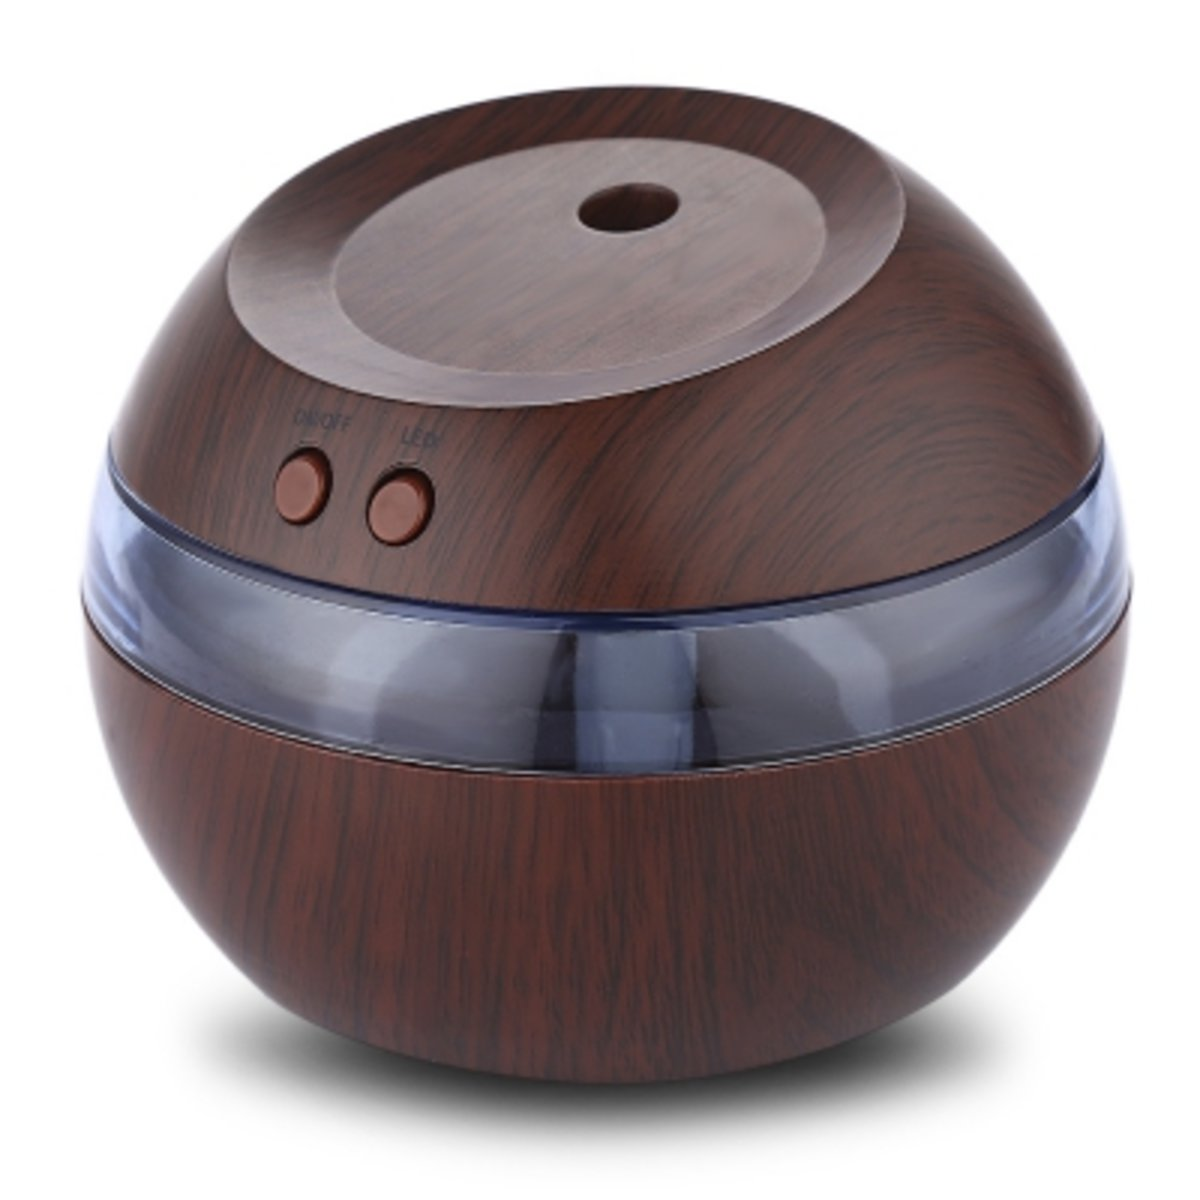 USB  Ultrasonic Humidifier with LED Light( DARK BROWN )